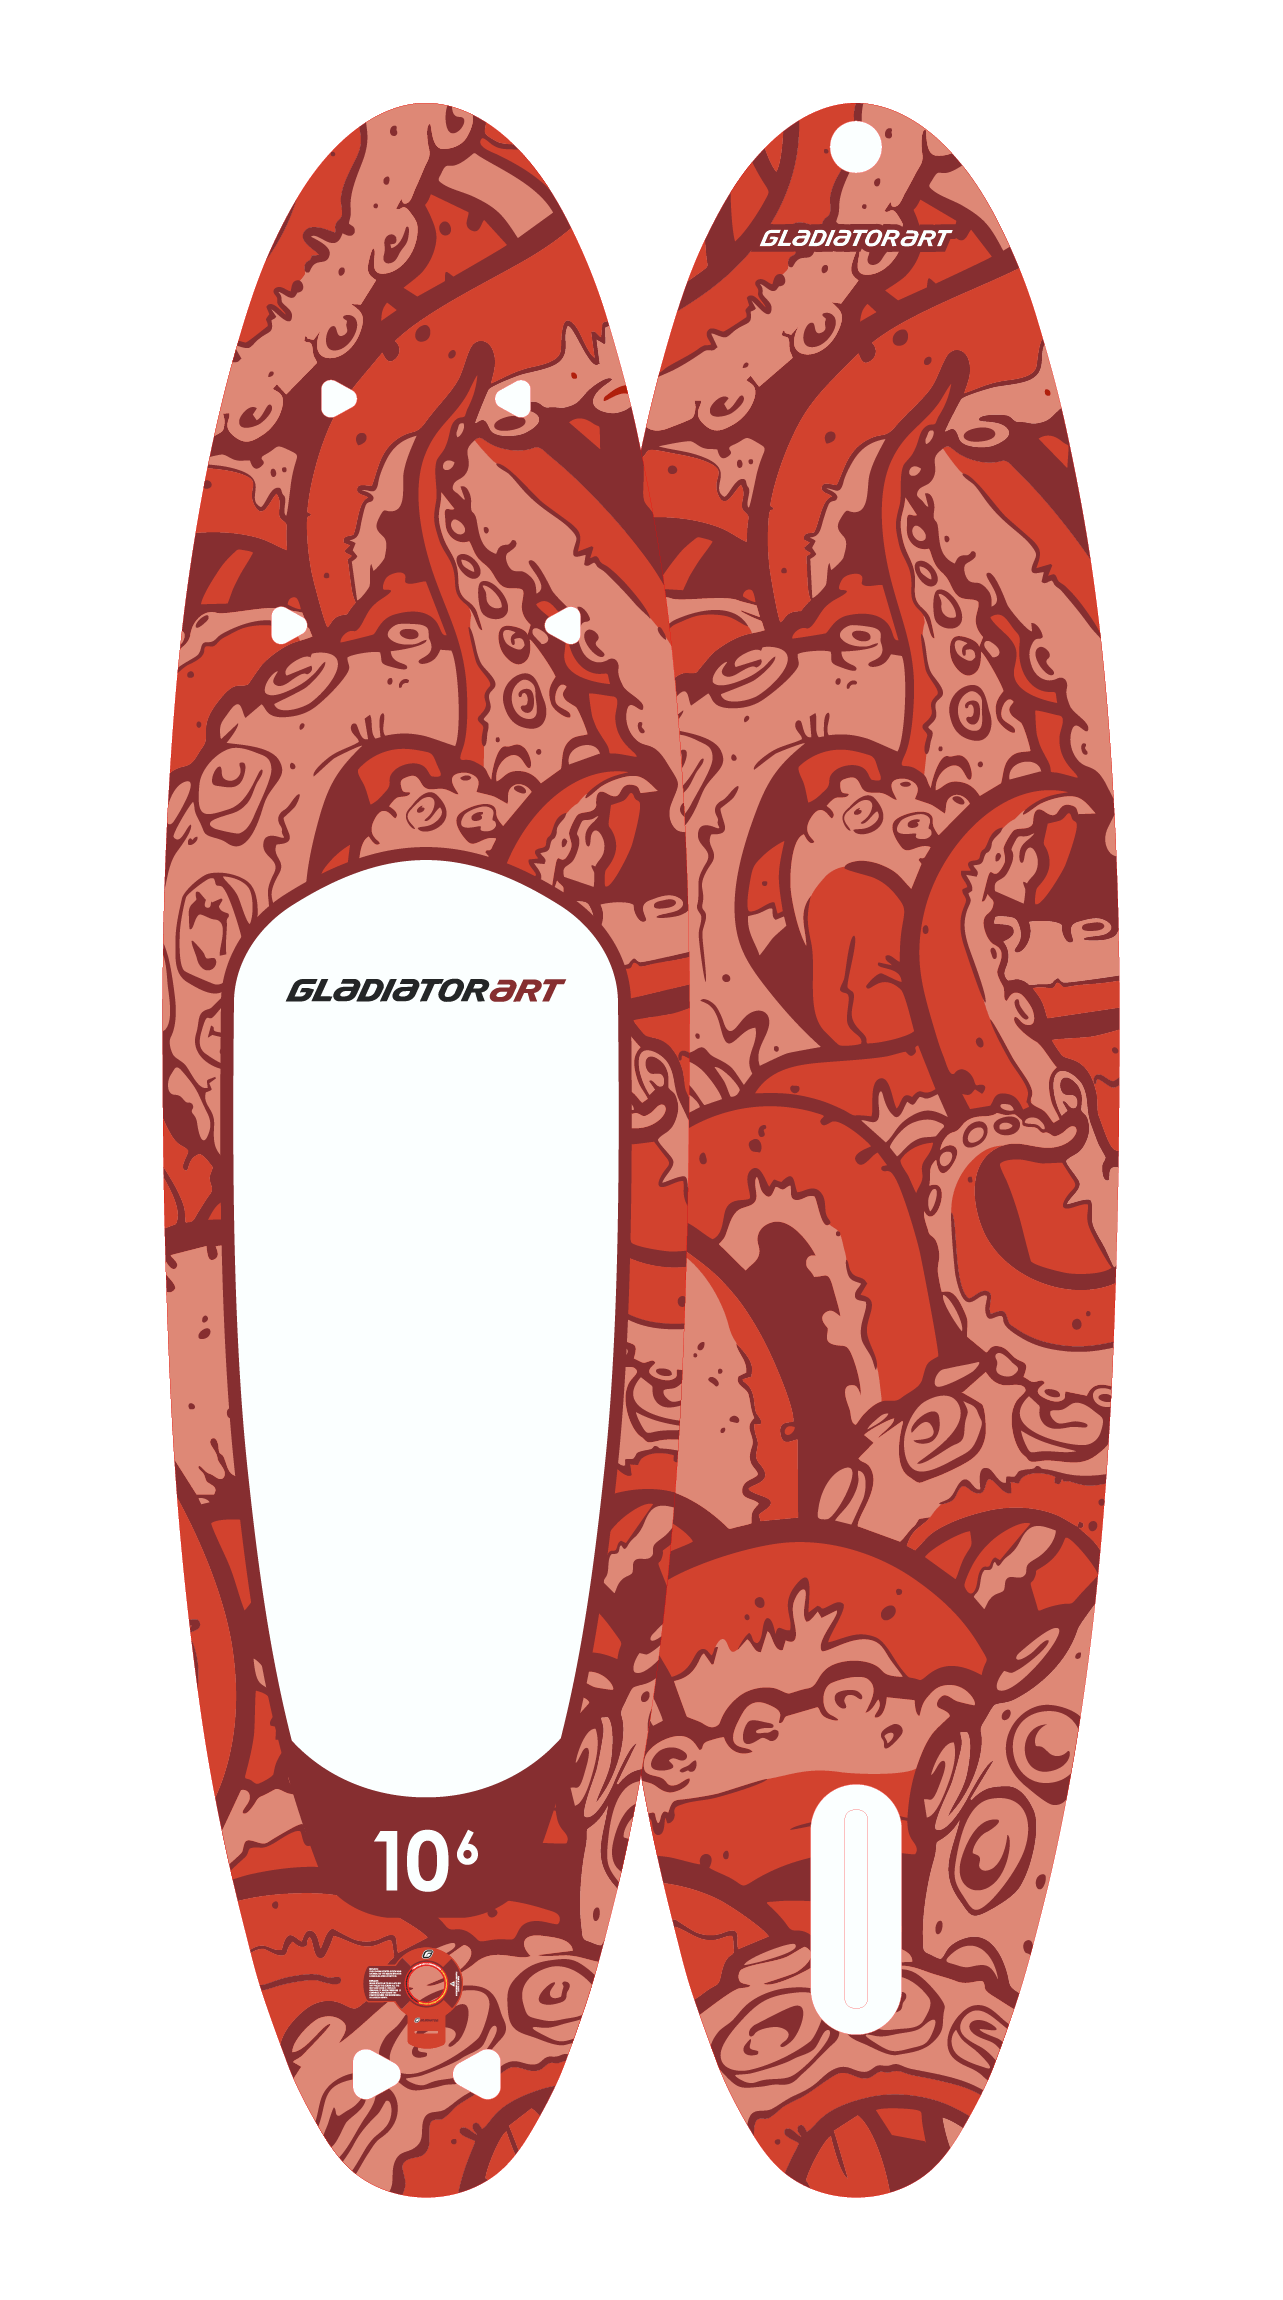 Надувной SUP борд GLADIATOR ART OCTOPUS 10,6